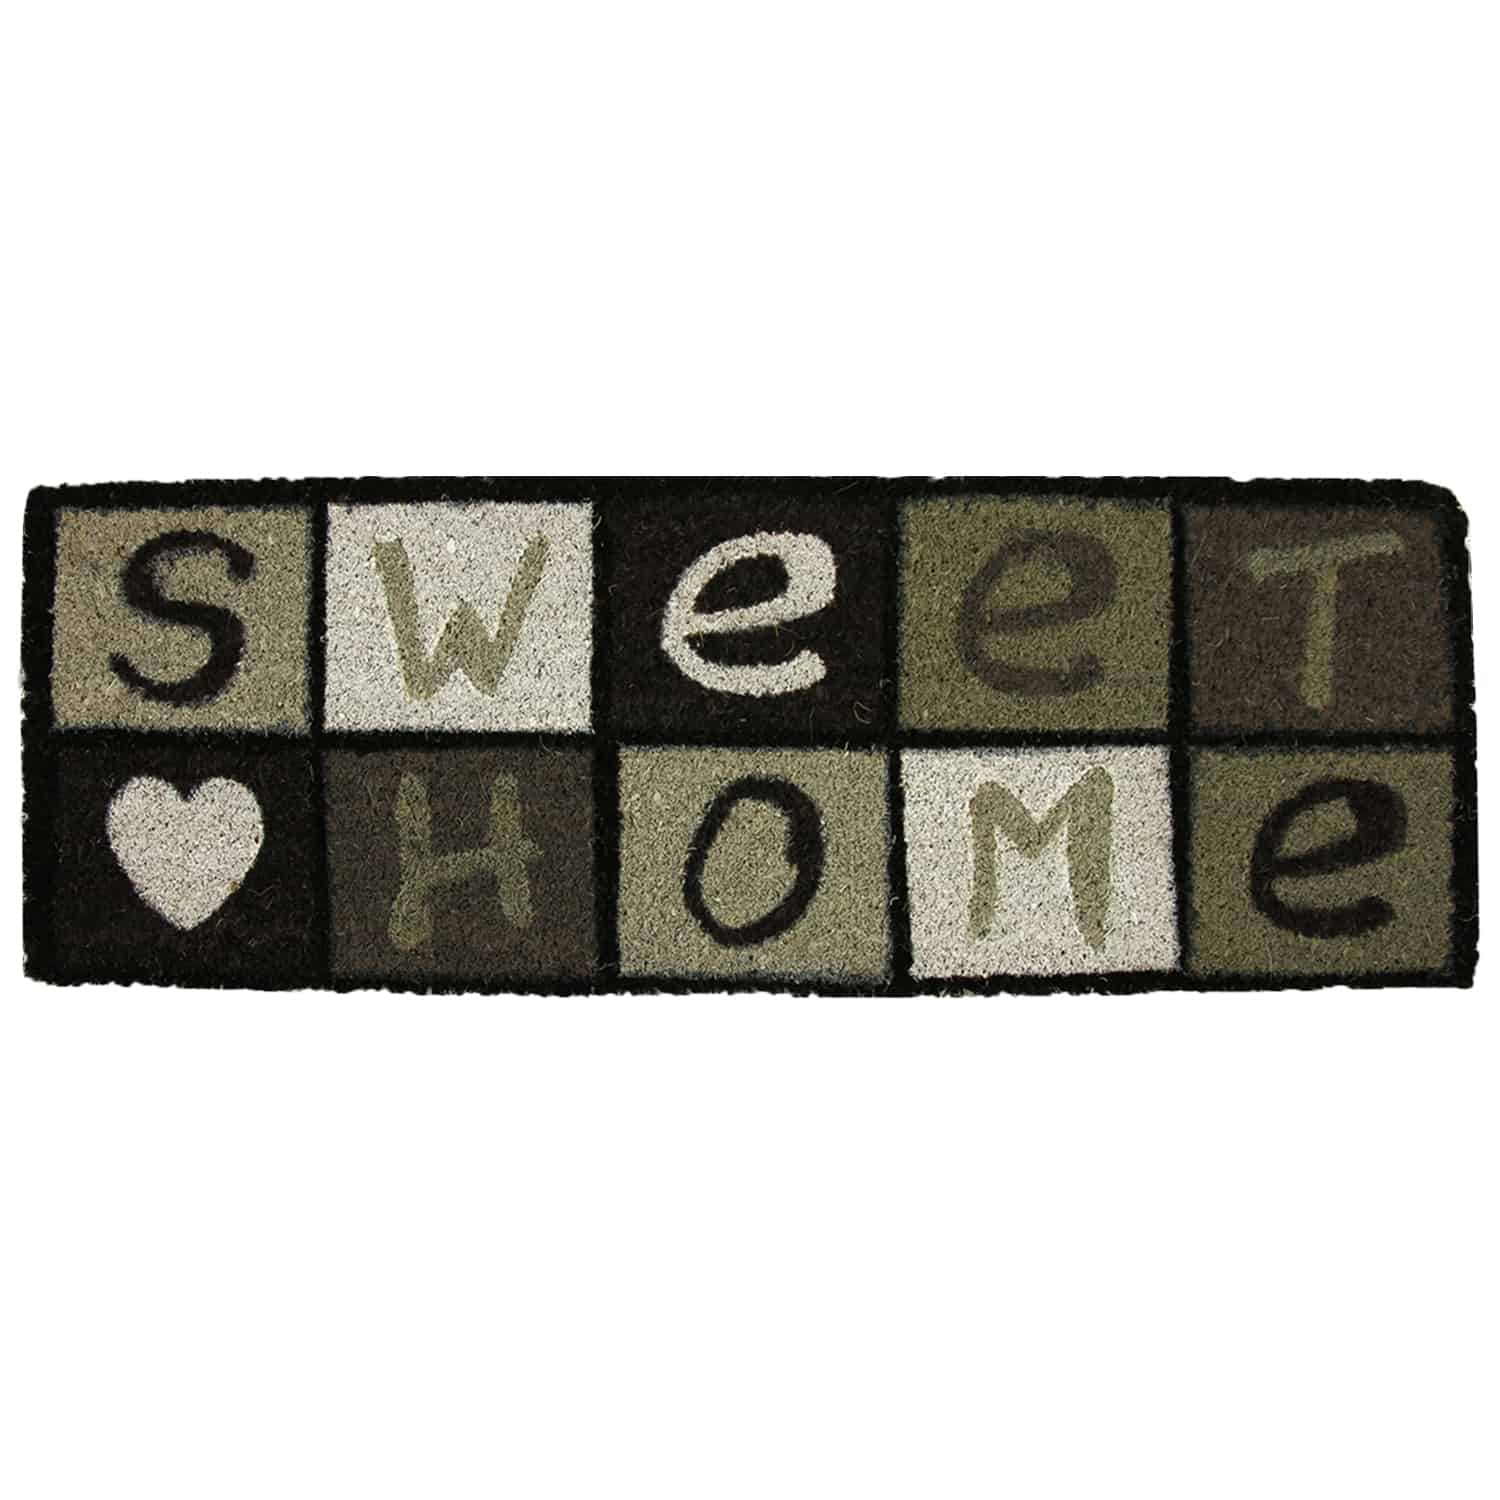 Sheltered Printed Large Front Door Mat Sweet Home Coir Coco Fibers Rug 30L x10W Inch